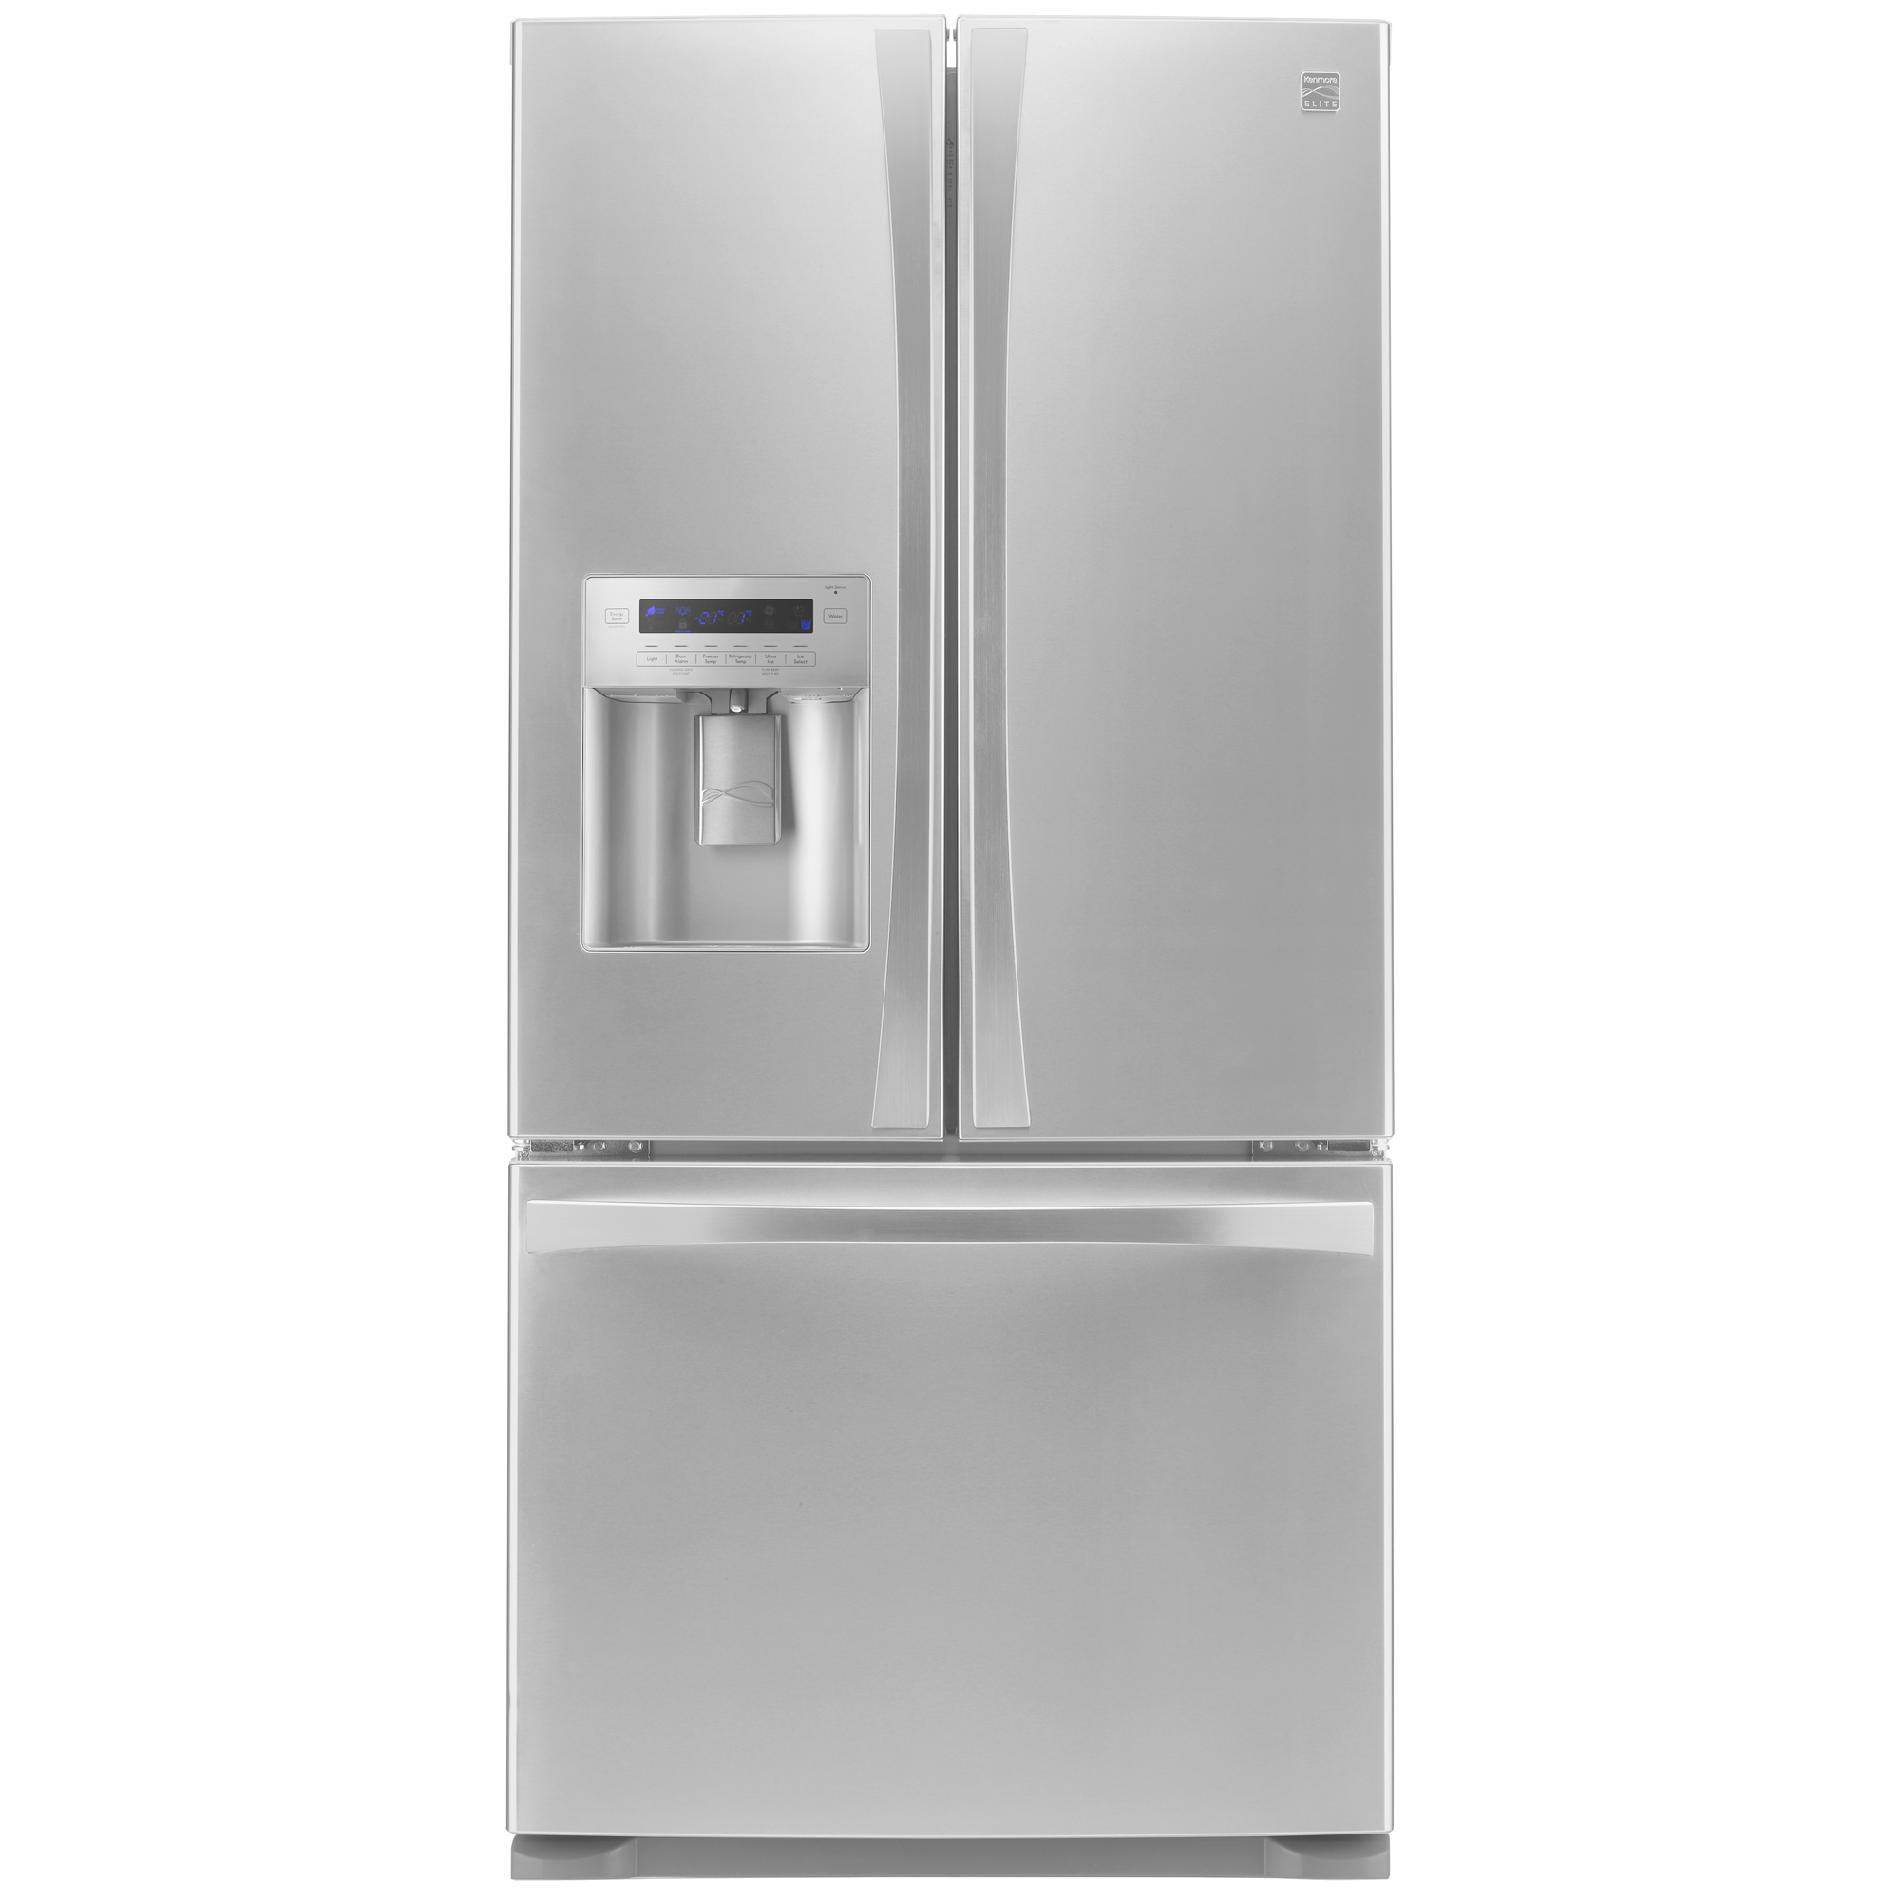 Kenmore Elite 24 2 cu ft French Door Bottom Freezer